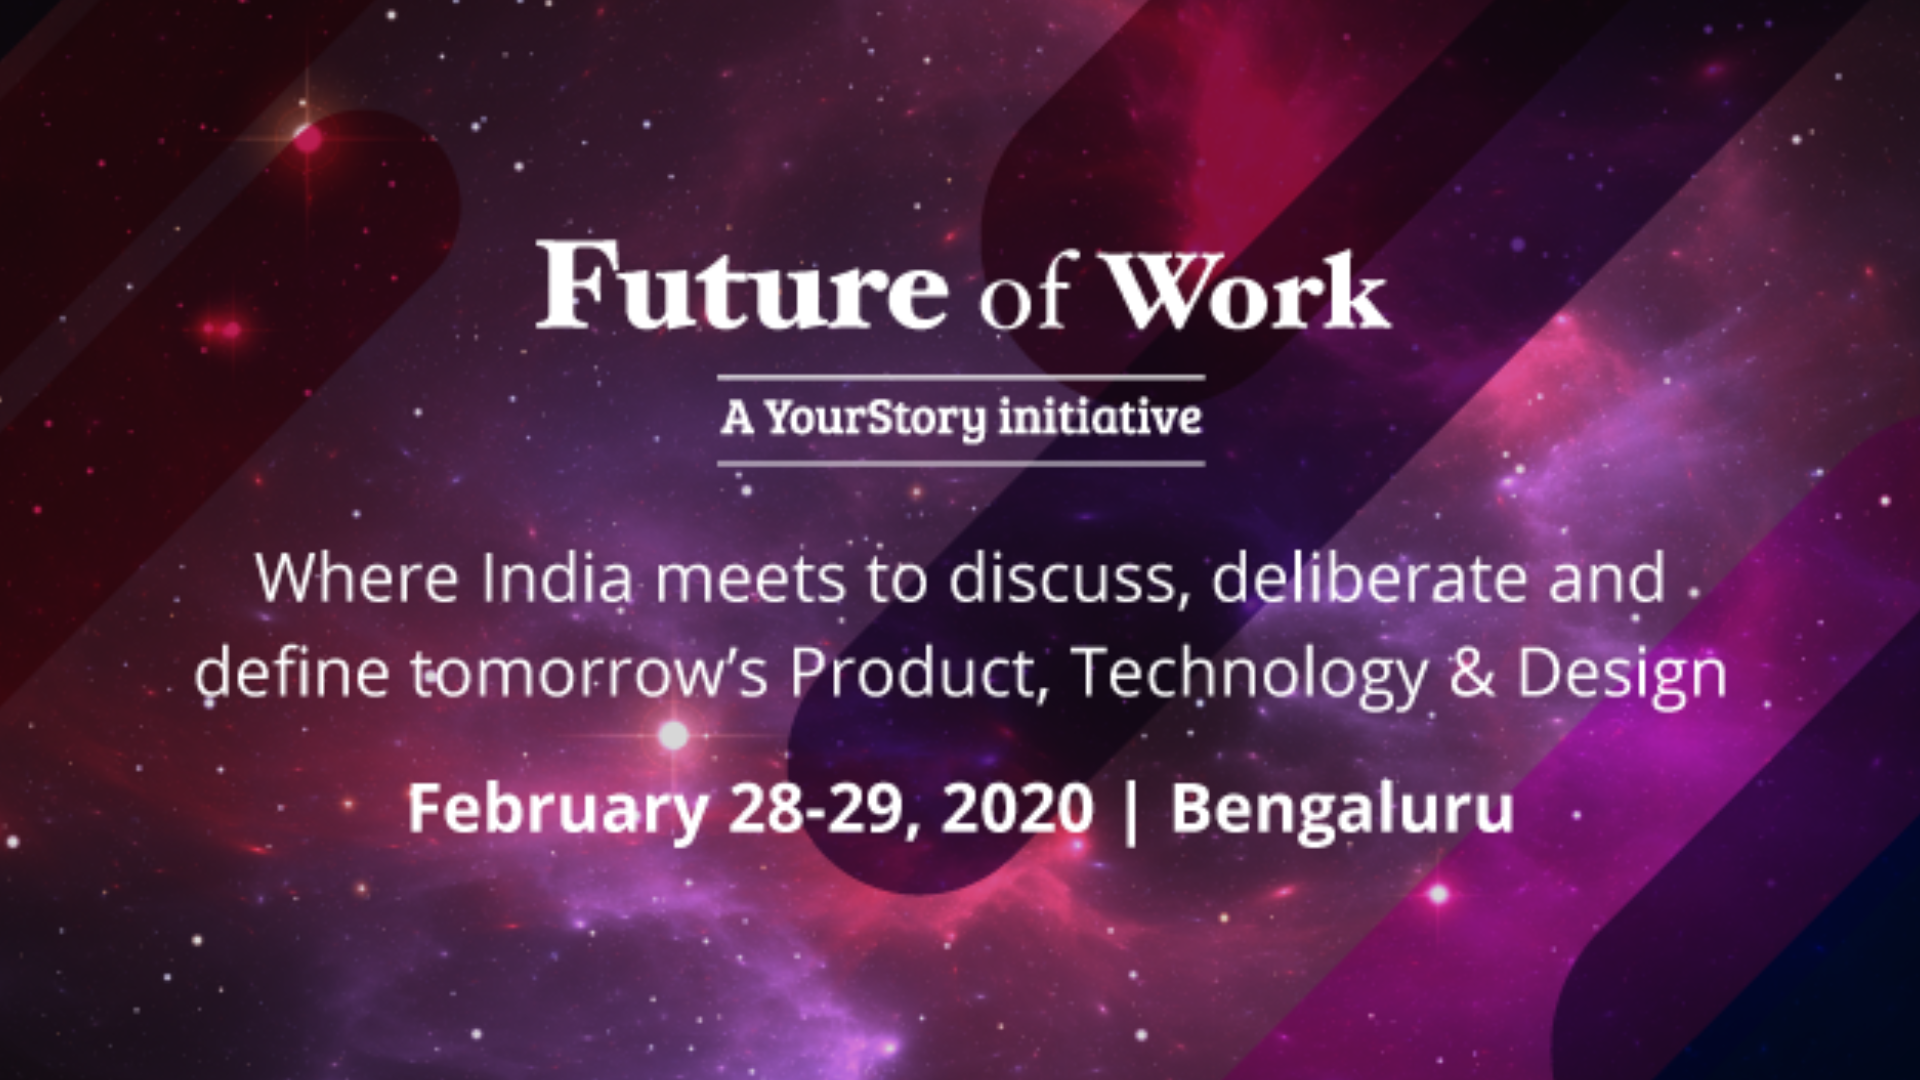 Future of Work – A YourStory Initiative